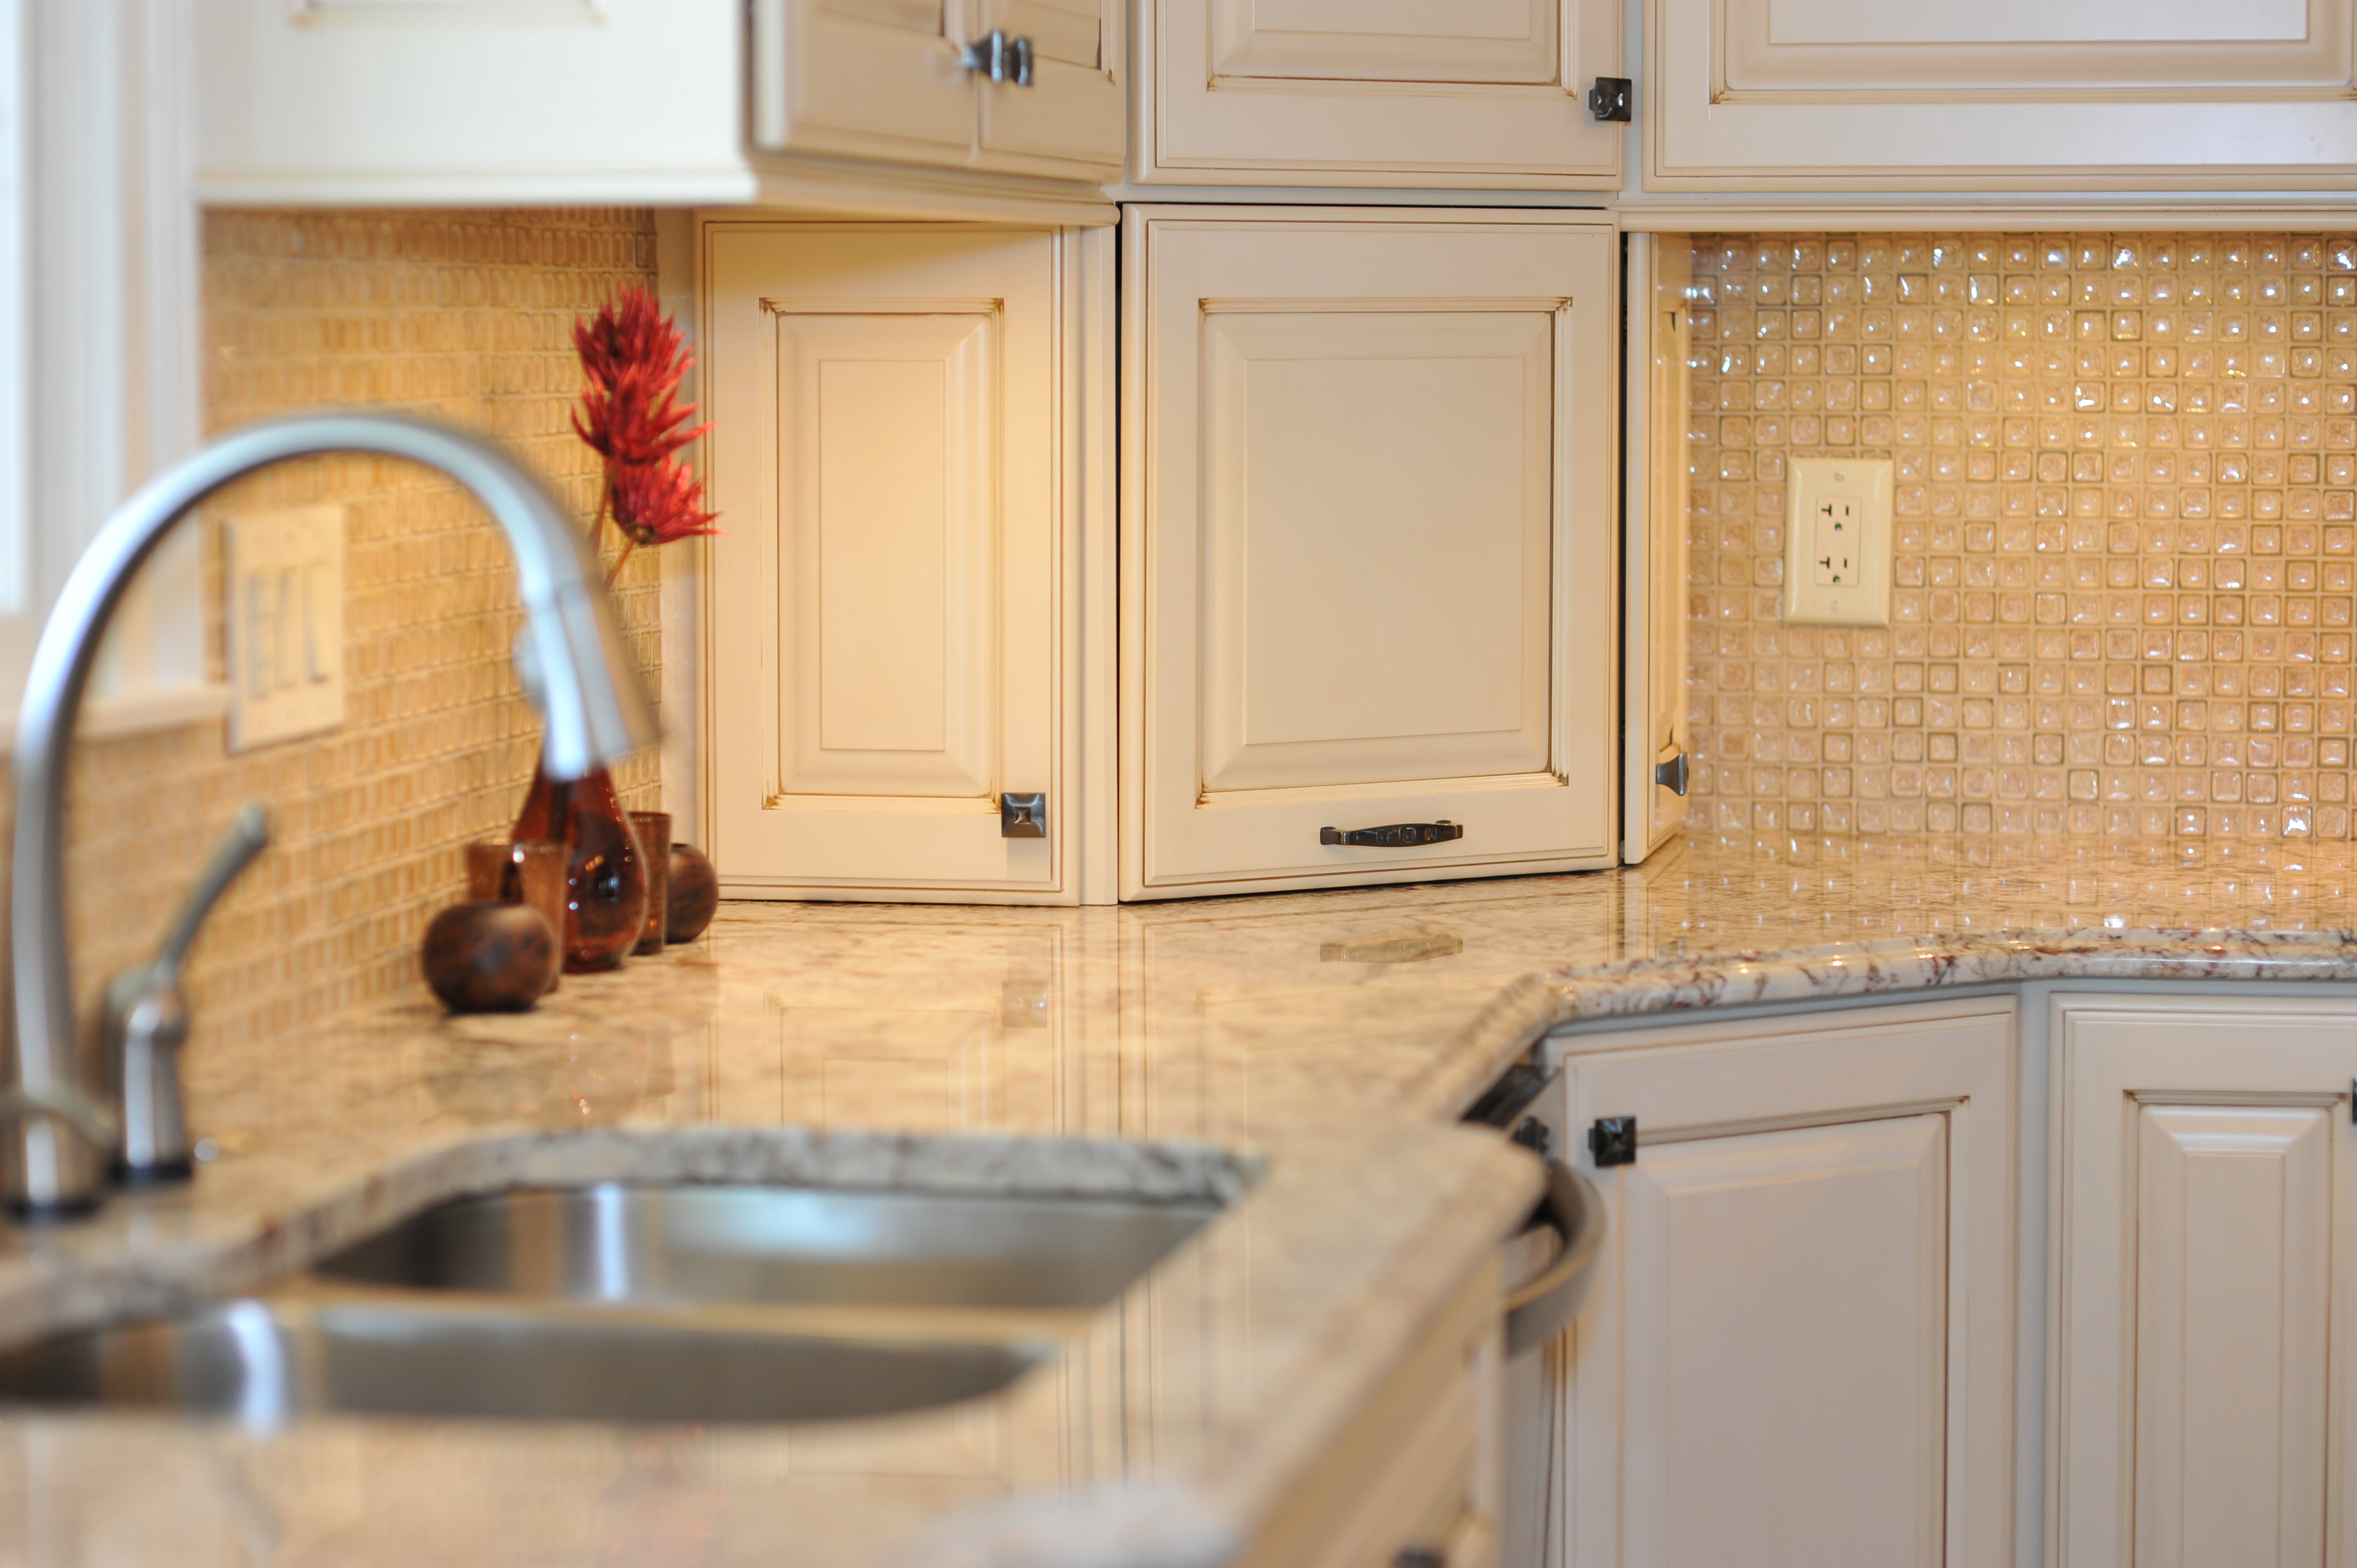 KEY FEATURES TO CHECK IN BUYING CRACKLE GLASS TILE MOSAICS BELK Tile